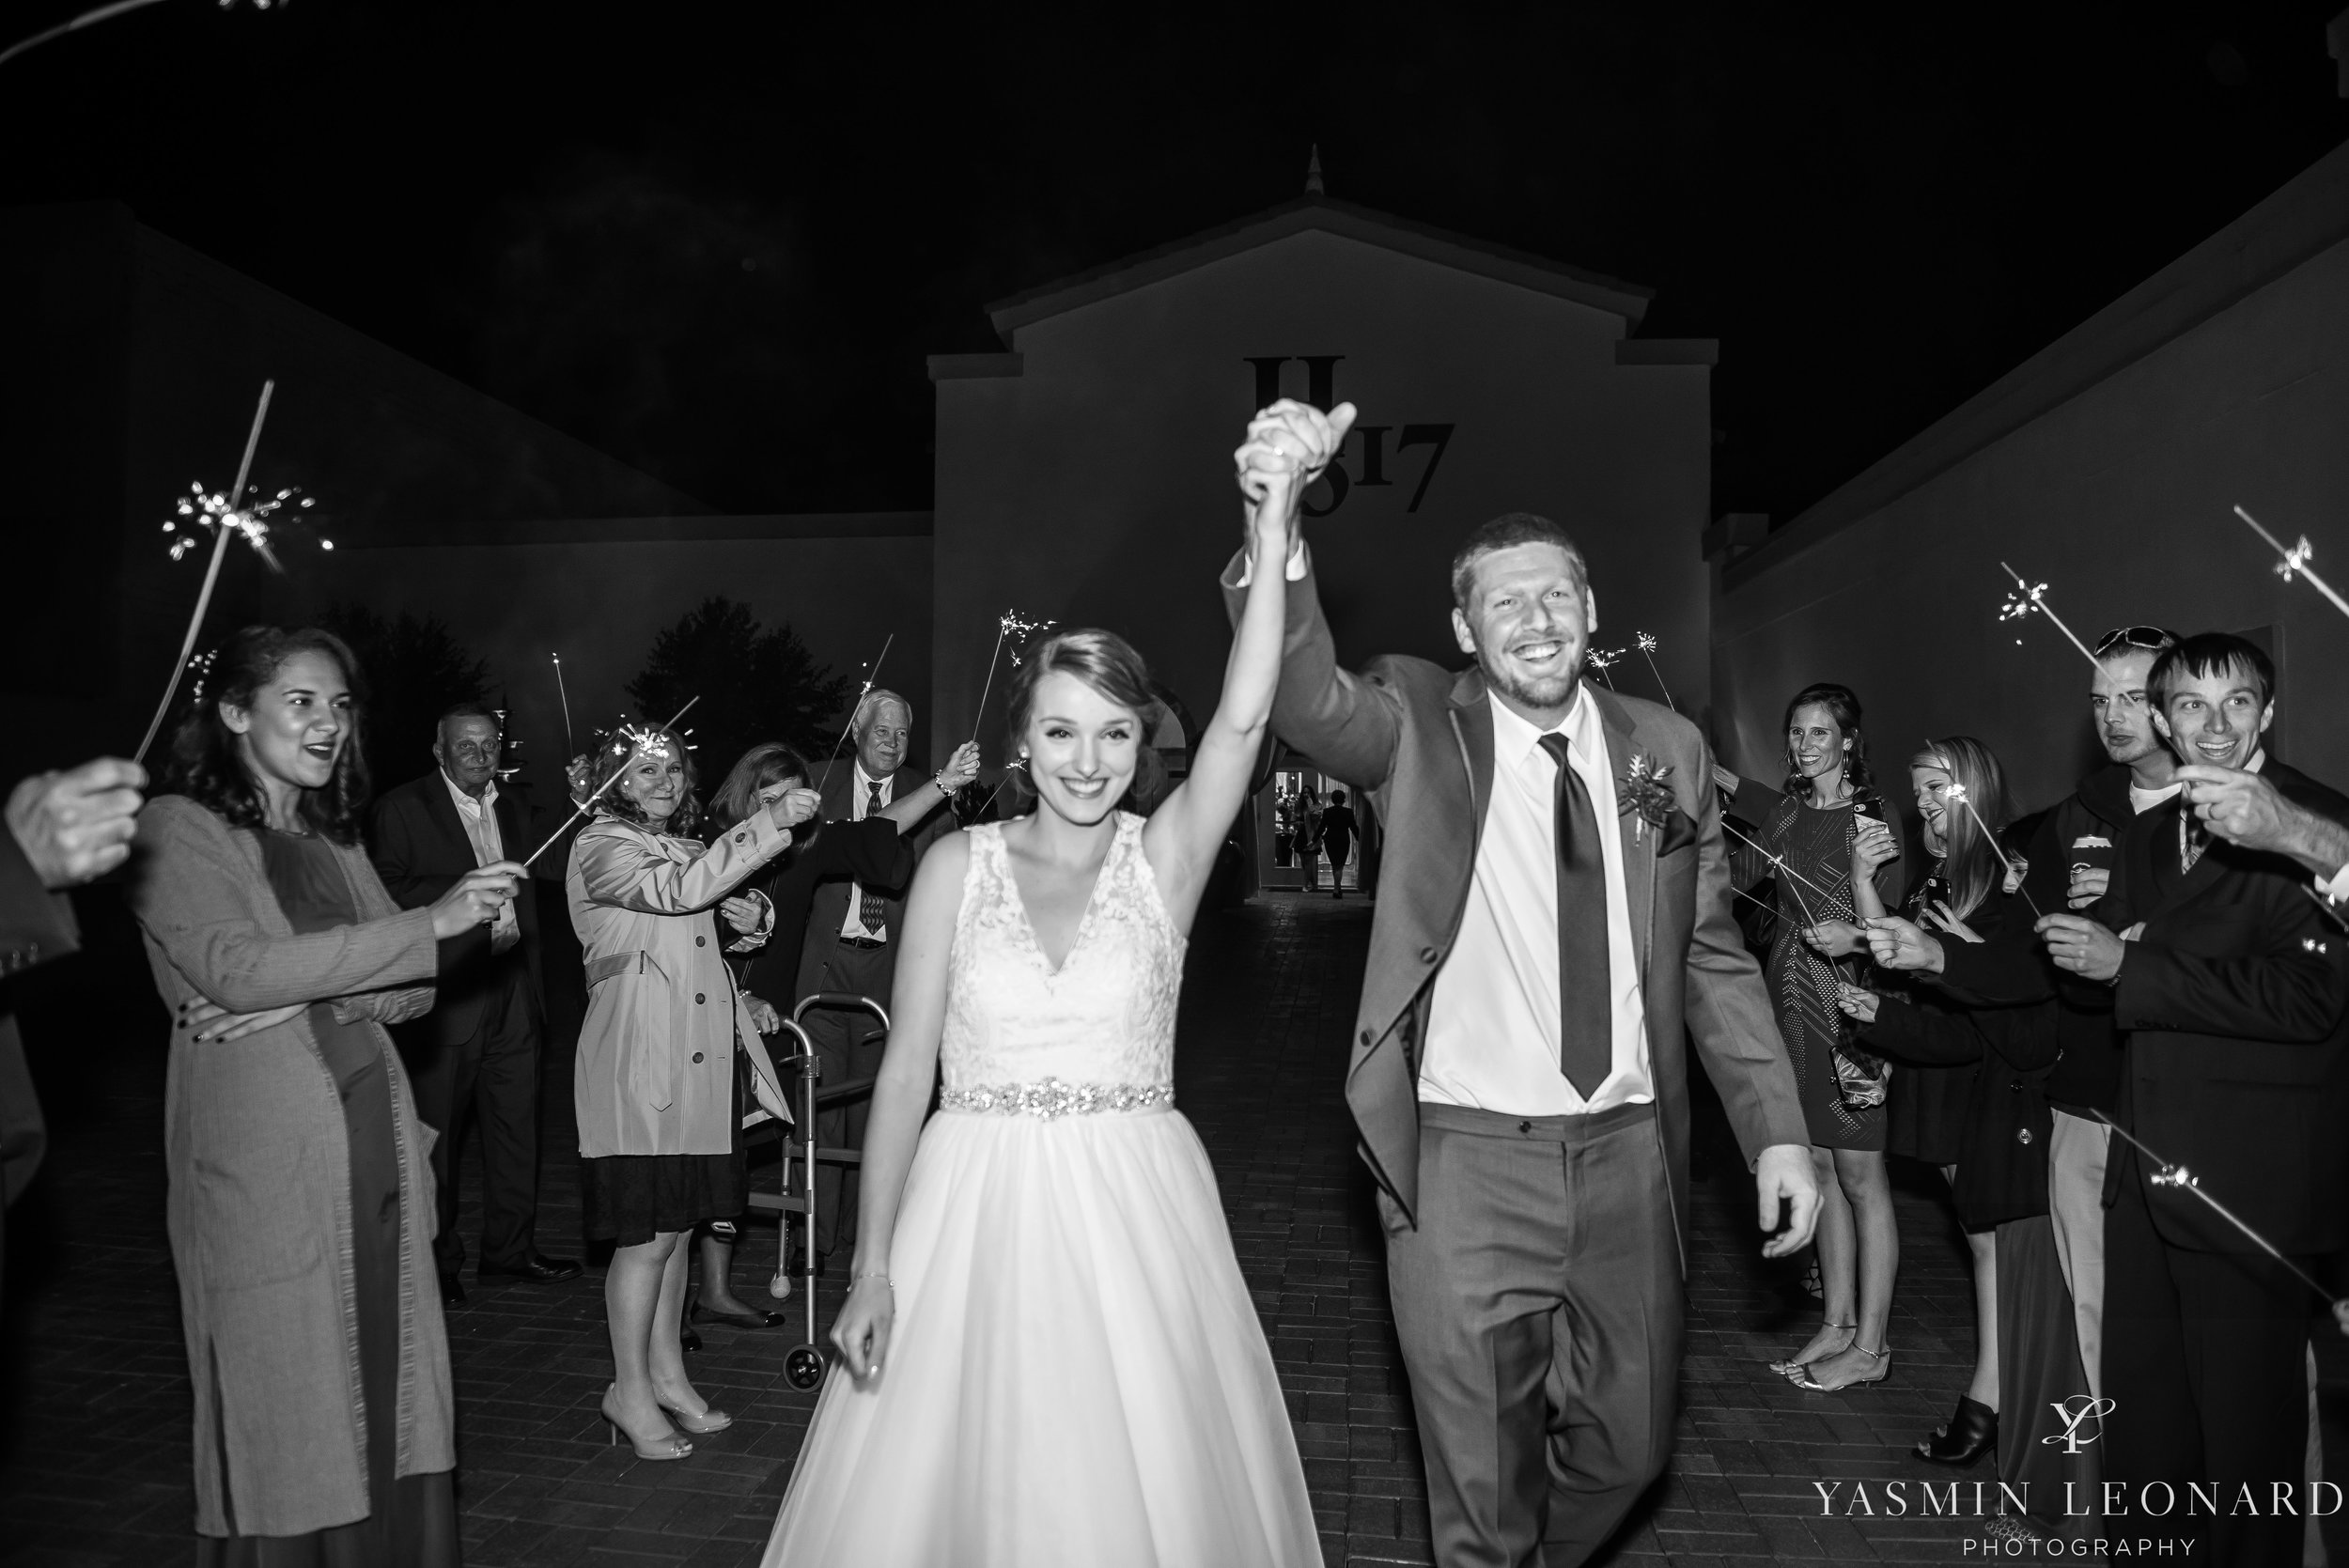 Villa Del Amour - High Point Weddings - NC Weddings - NC Photographer - NC Wedding Photographer - Yasmin Leonard Photography-100.jpg